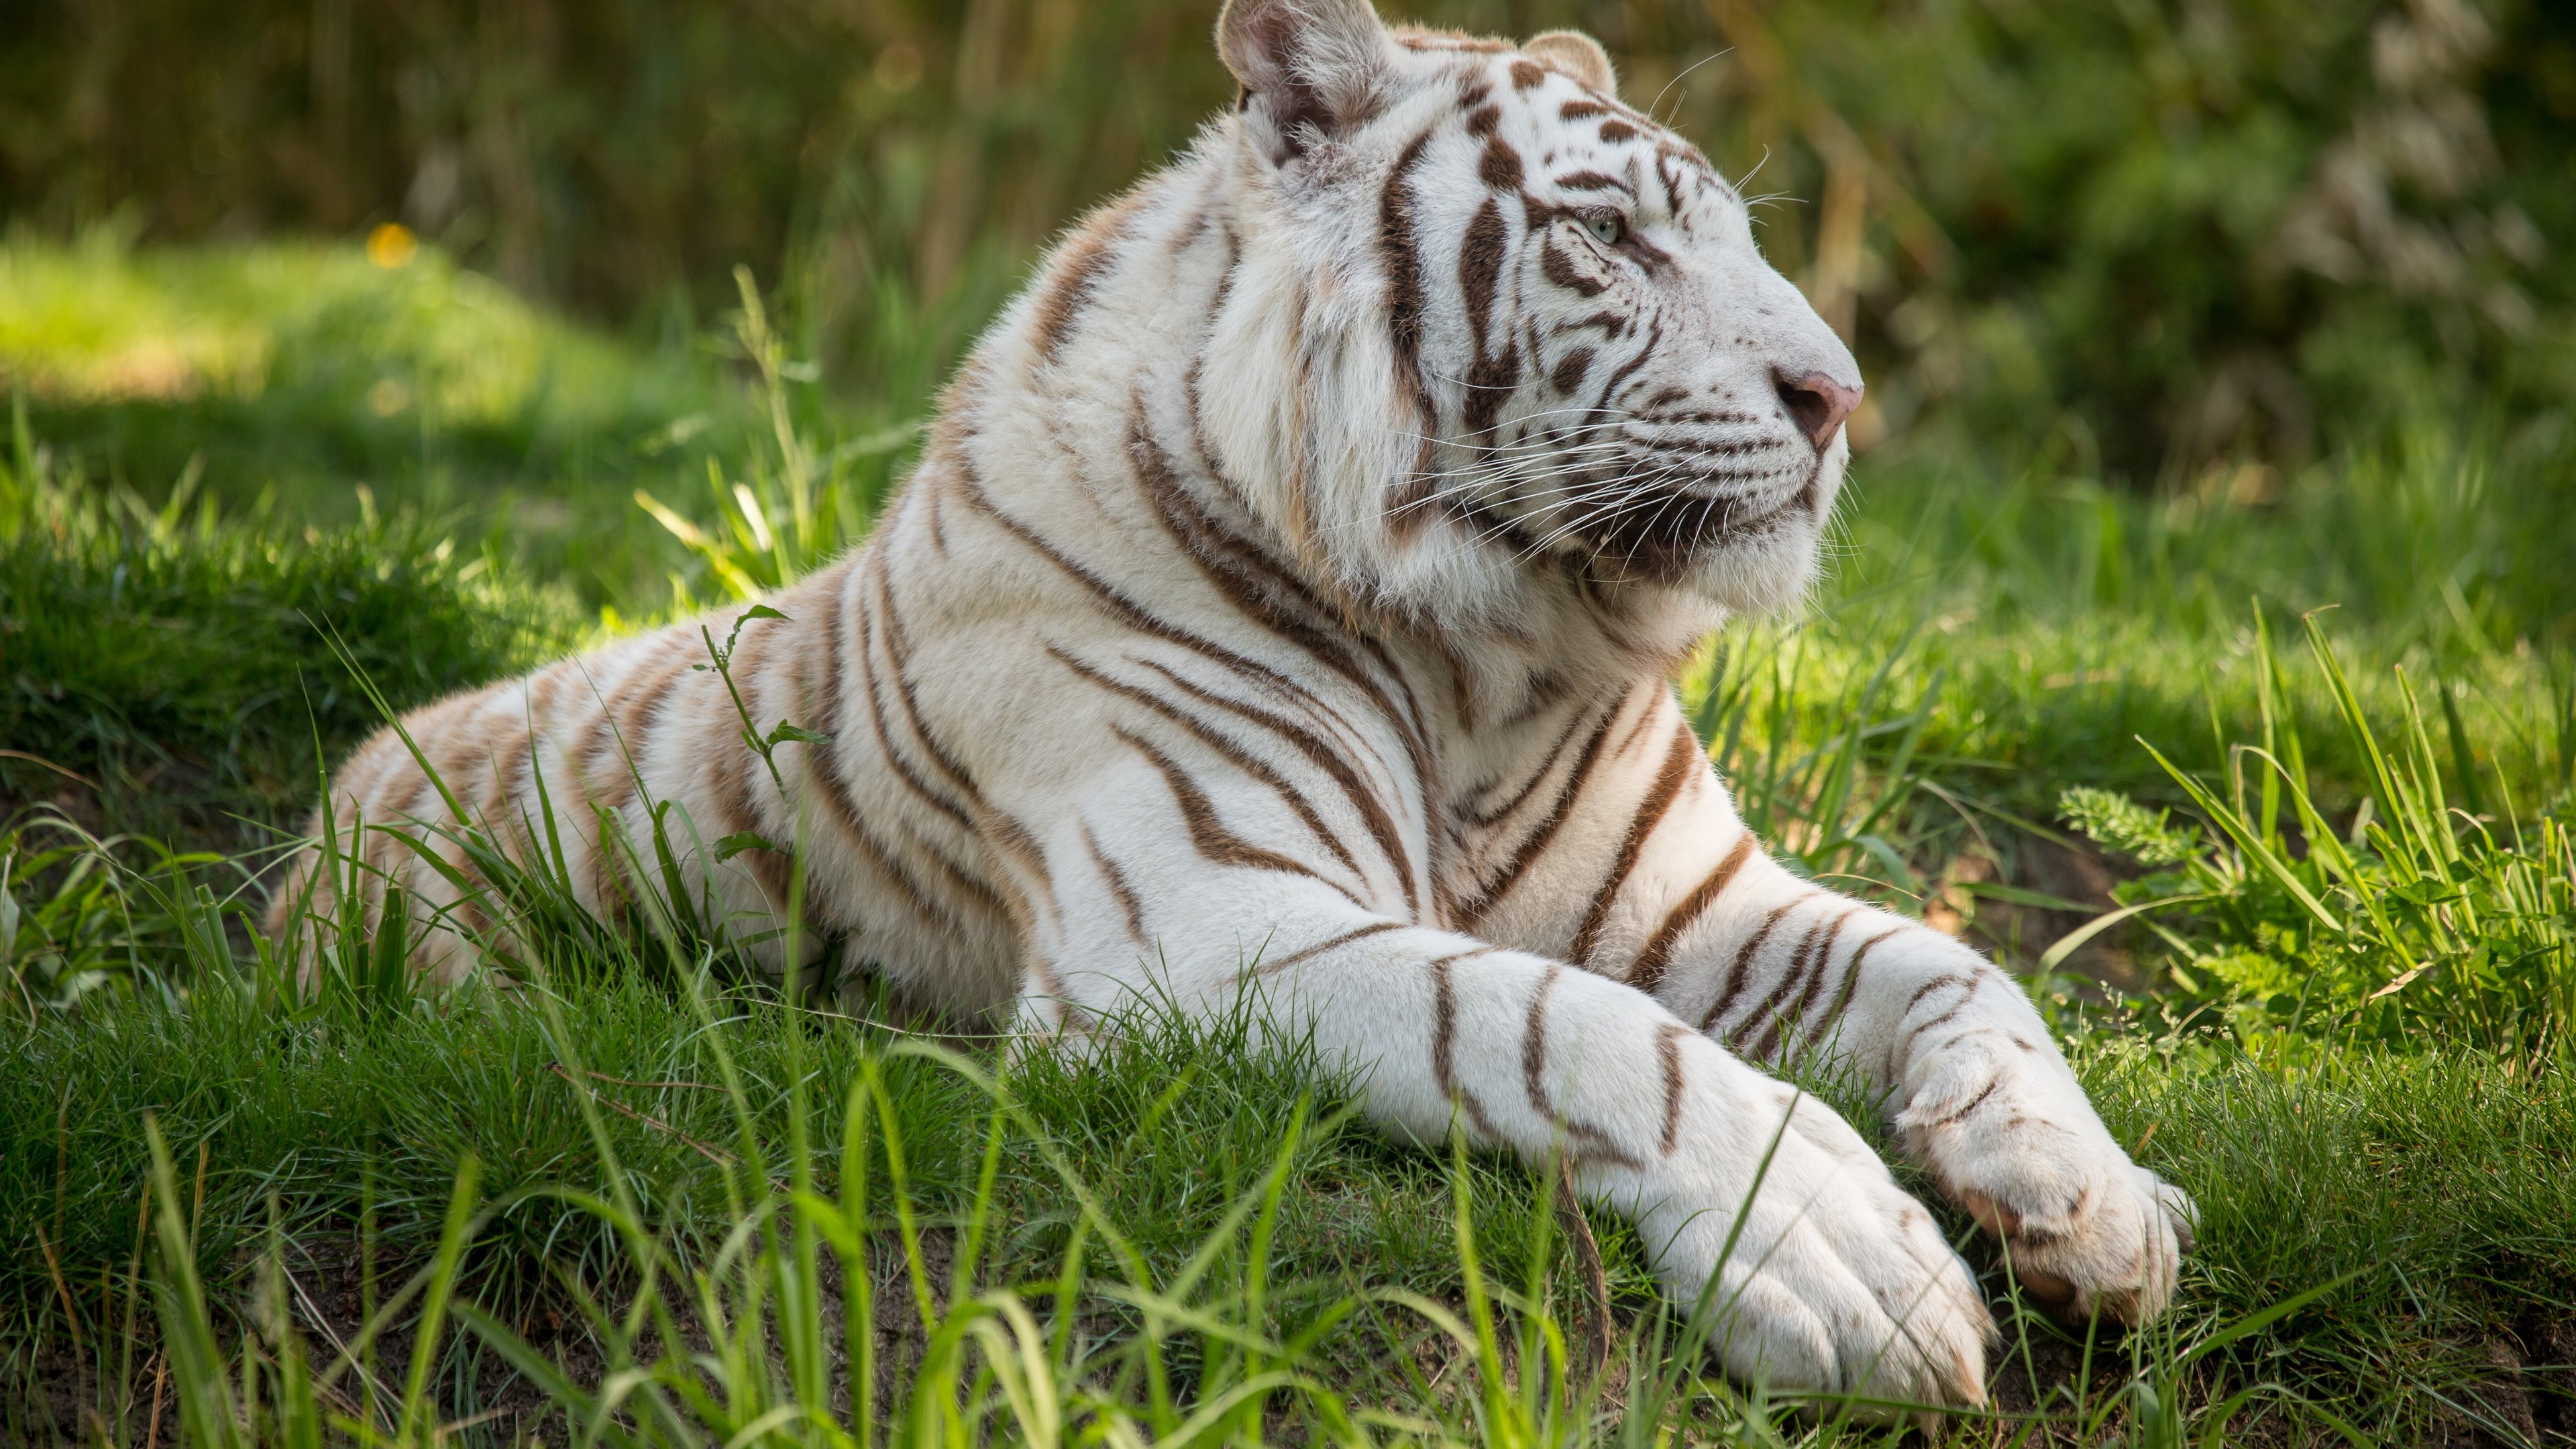 Wallpaper 4k White Tiger 4k 4k Wallpapers Animals Wallpapers Hd Wallpapers Tiger Wallpapers White Tiger Wallpapers